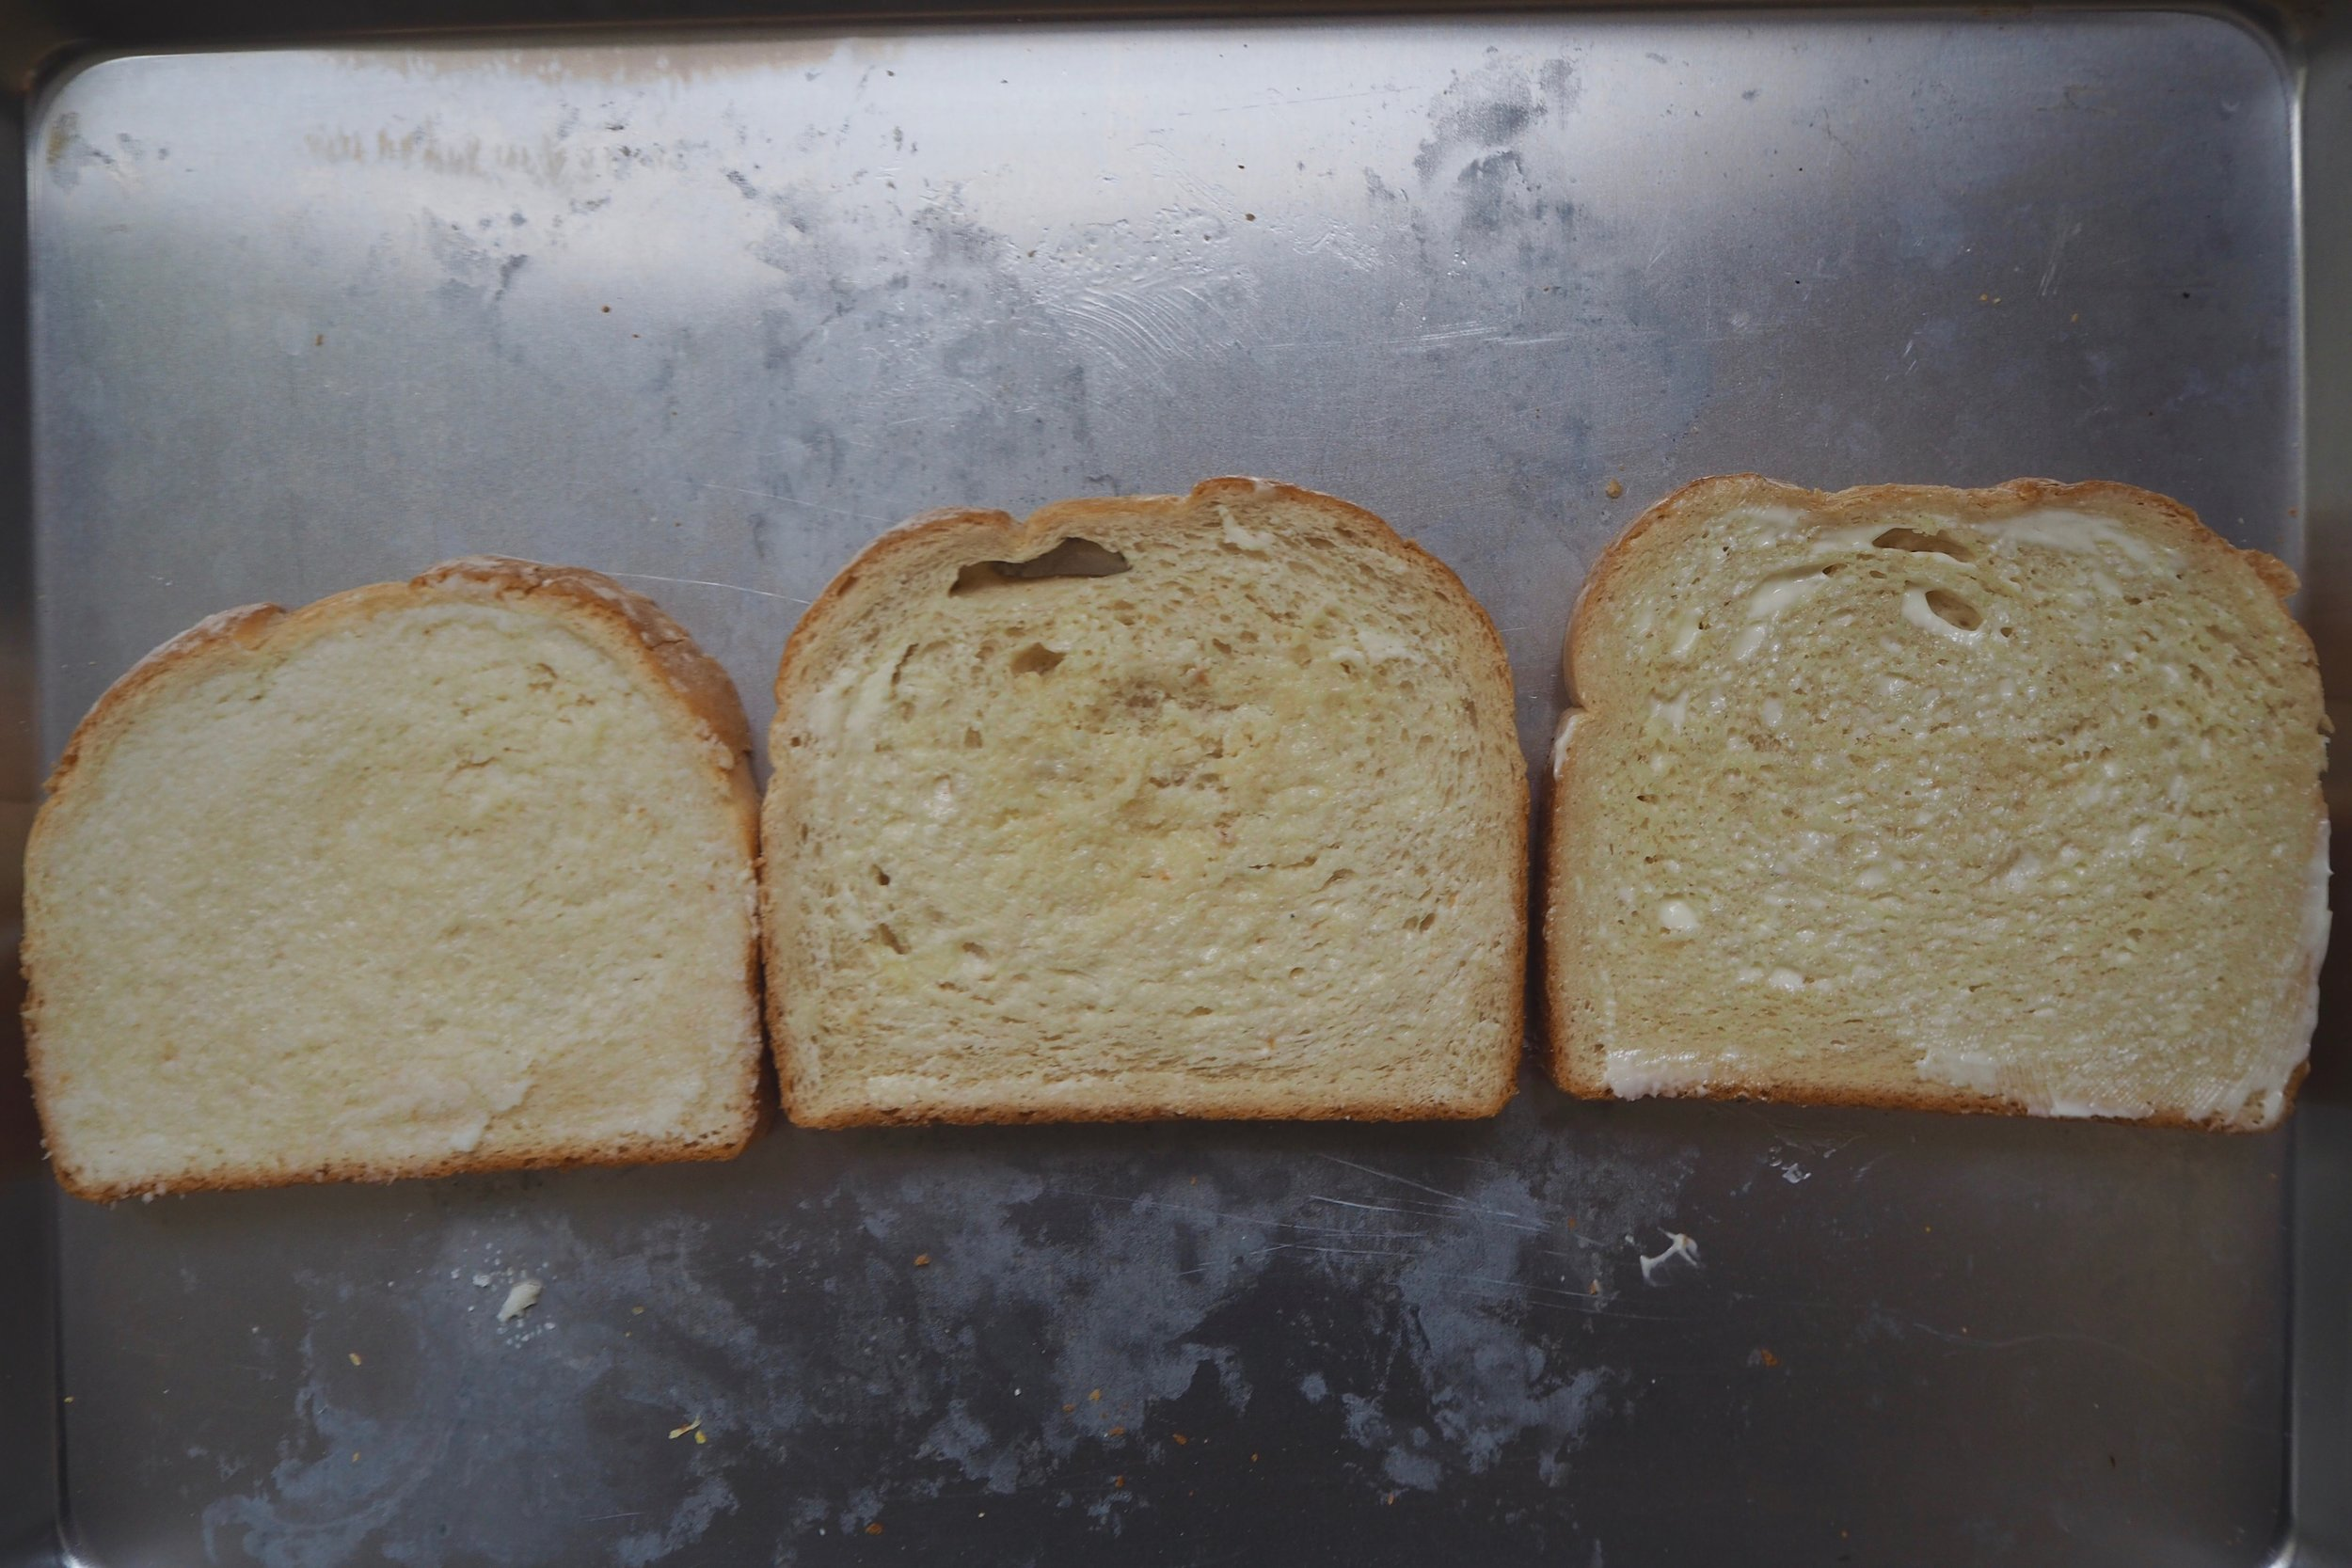 Also from left to right, ghee, butter, mayonnaise.